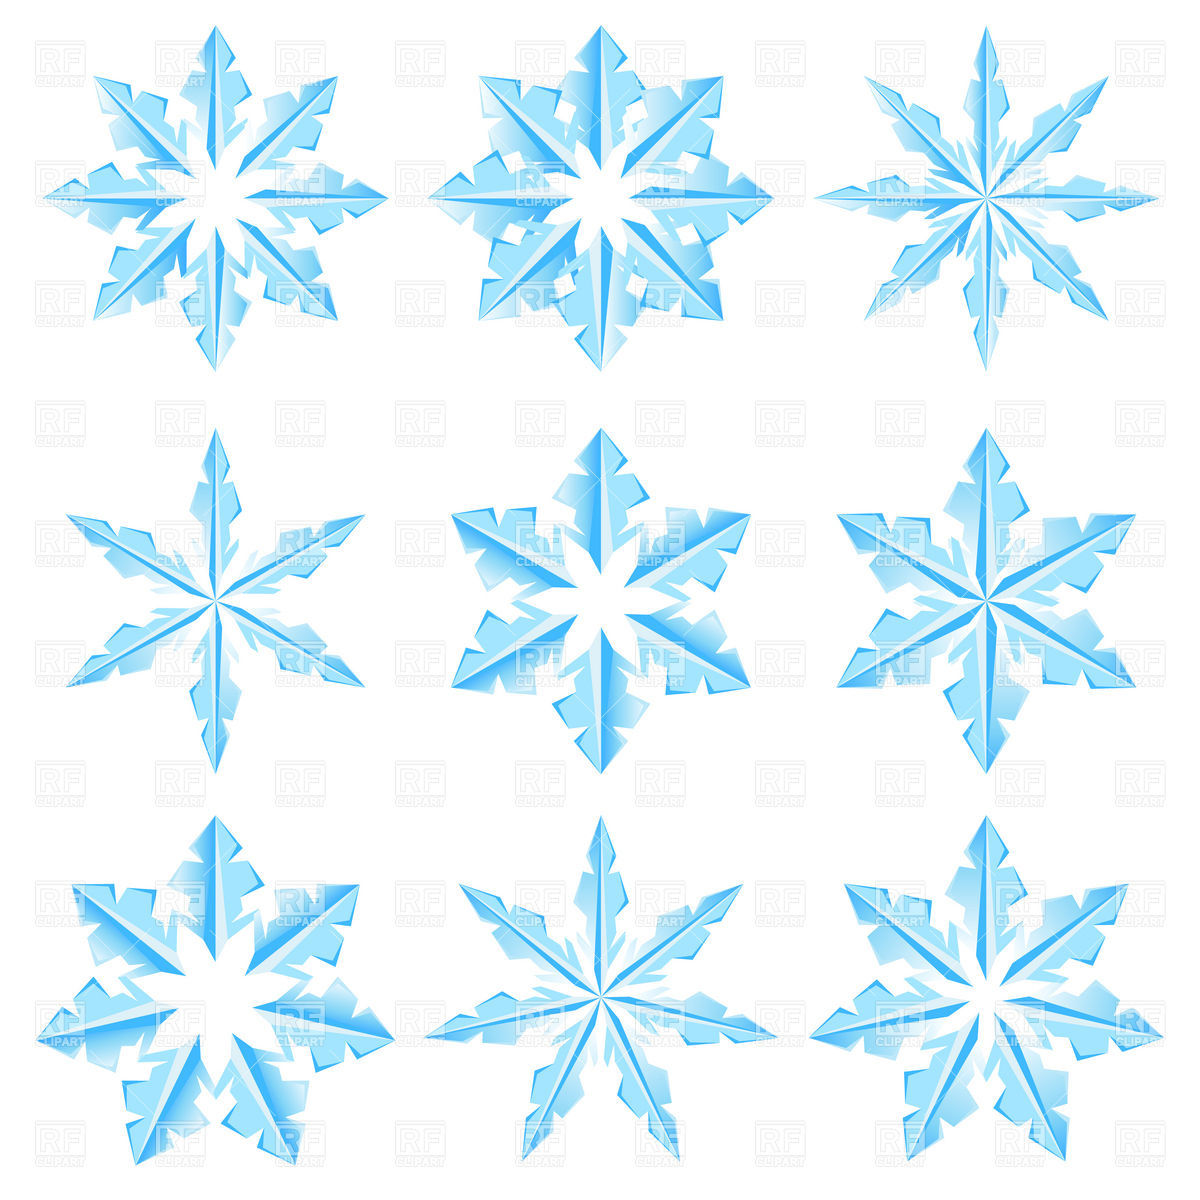 Ice clipart #1, Download drawings